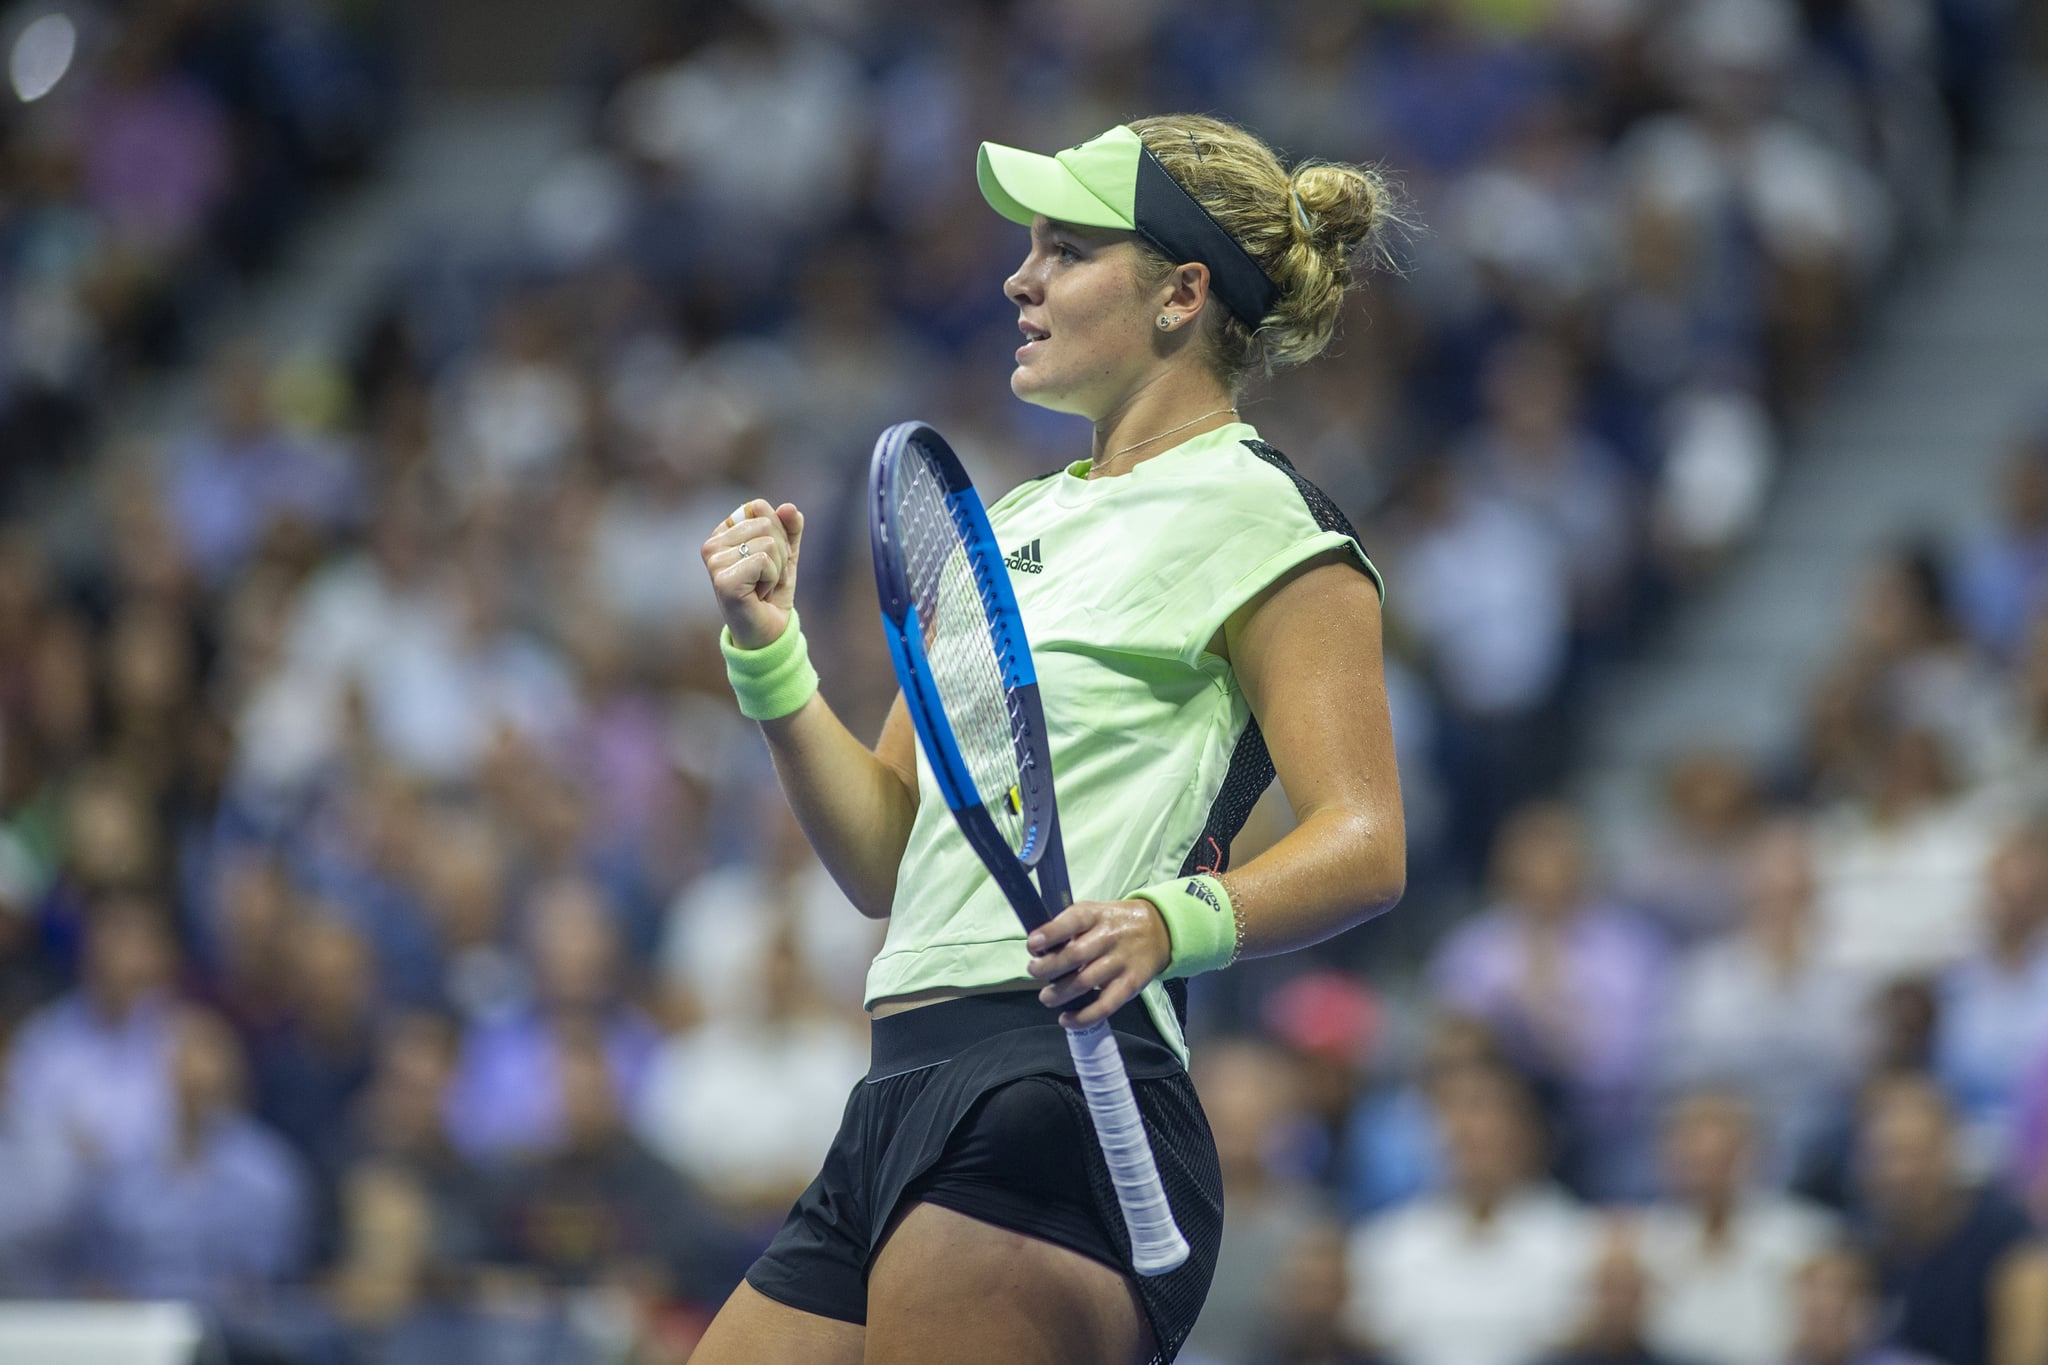 2019 US Open Tennis Tournament- Day Three.  Catherine McNally of the United States reacts after winning the first set against Serena Williams of the United States in the Women's Singles Round Two match on Arthur Ashe Stadium at the 2019 US Open Tennis Tournament at the USTA Billie Jean King National Tennis Centre on August 27th, 2019 in Flushing, Queens, New York City.  (Photo by Tim Clayton/Corbis via Getty Images)